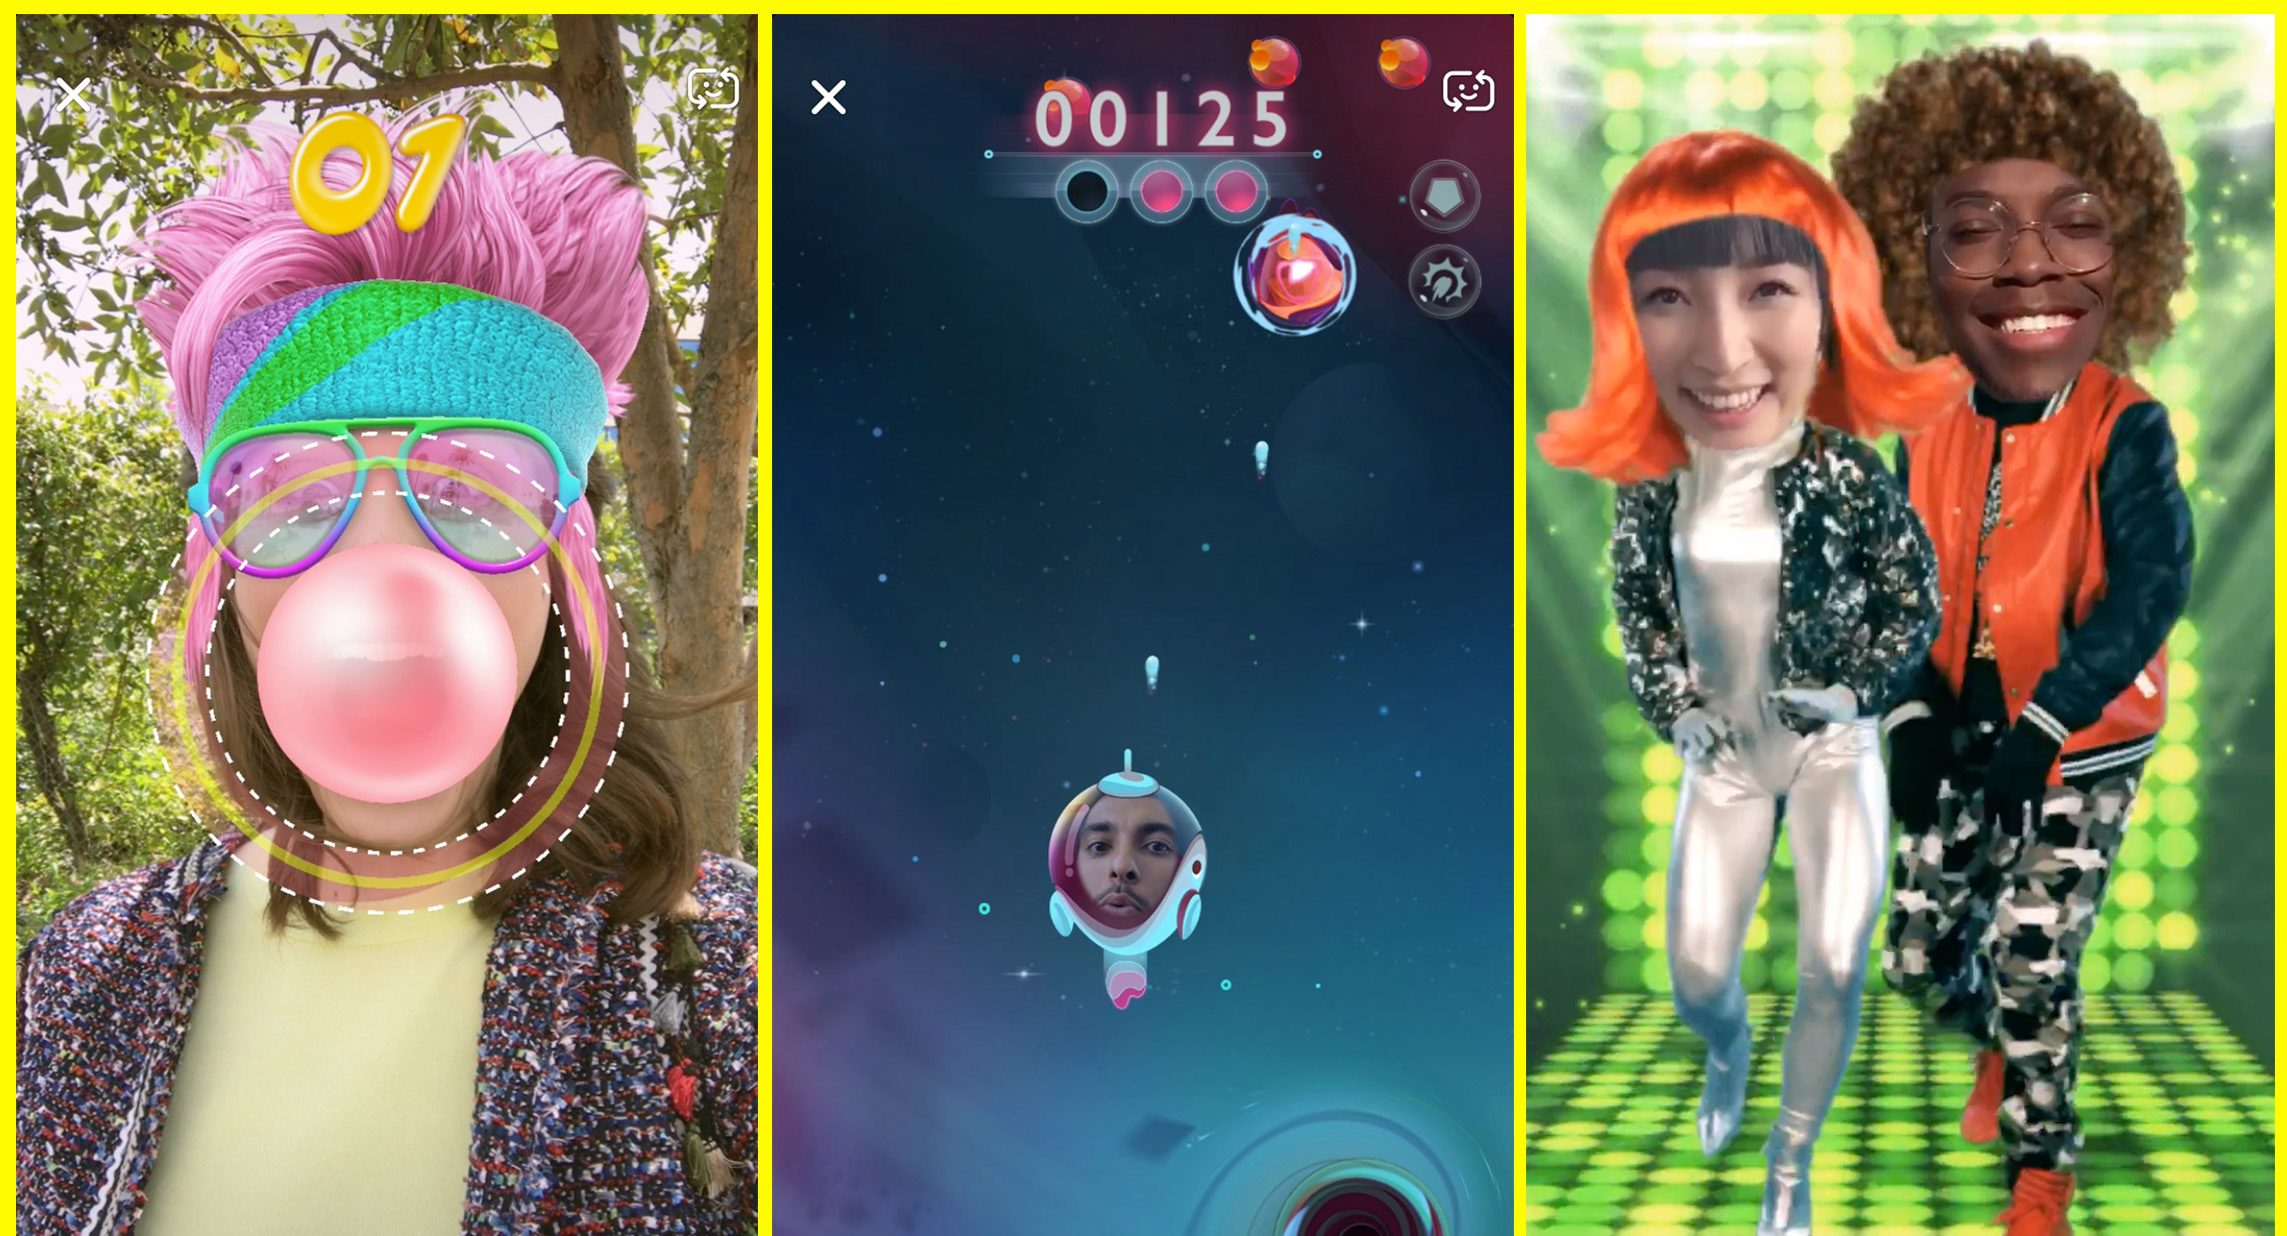 Snapchat's Snappables are new augmented reality games you can play with friends